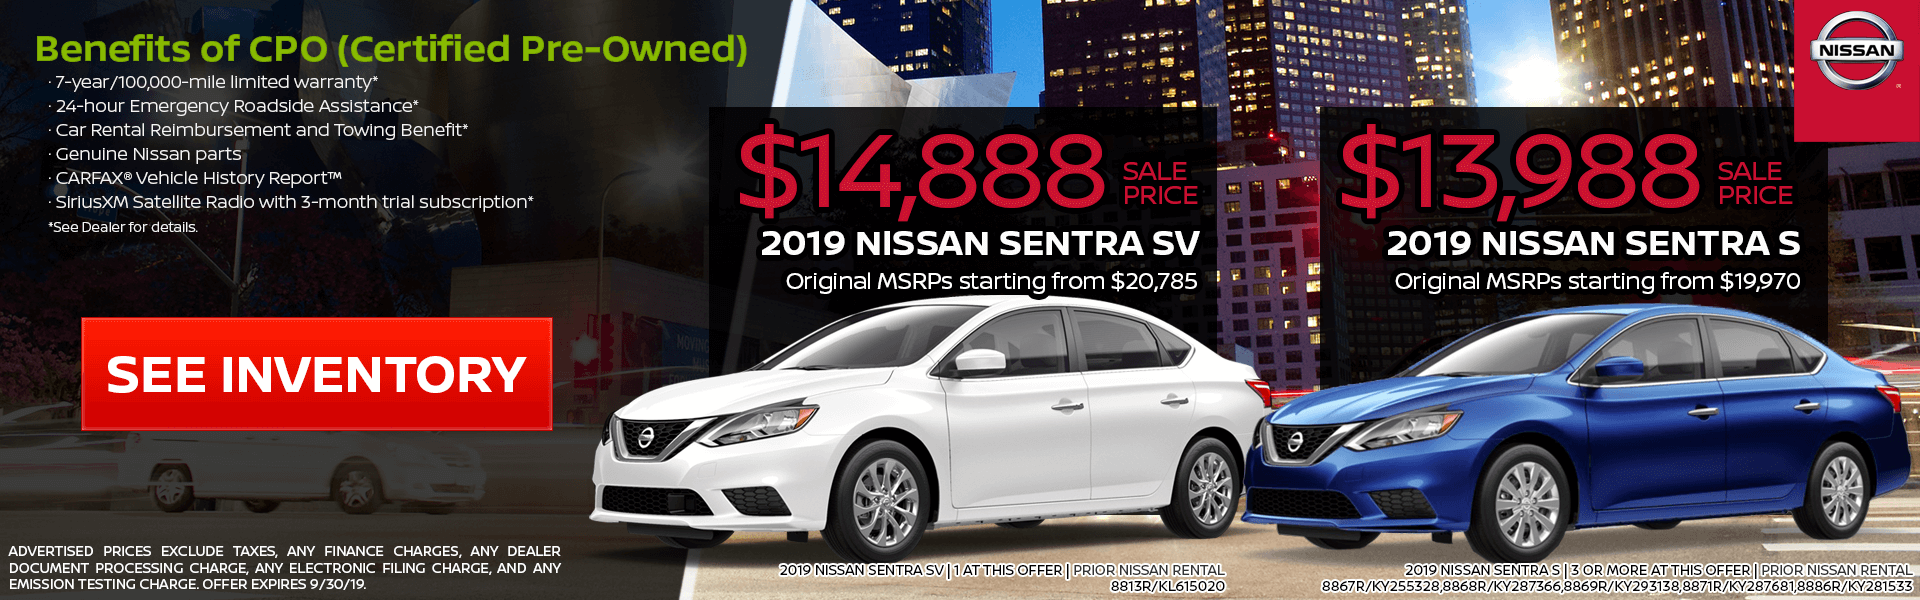 Nissan Dealership Los Angeles >> New Used Cars For Sale In Los Angeles Ross Nissan Dealership